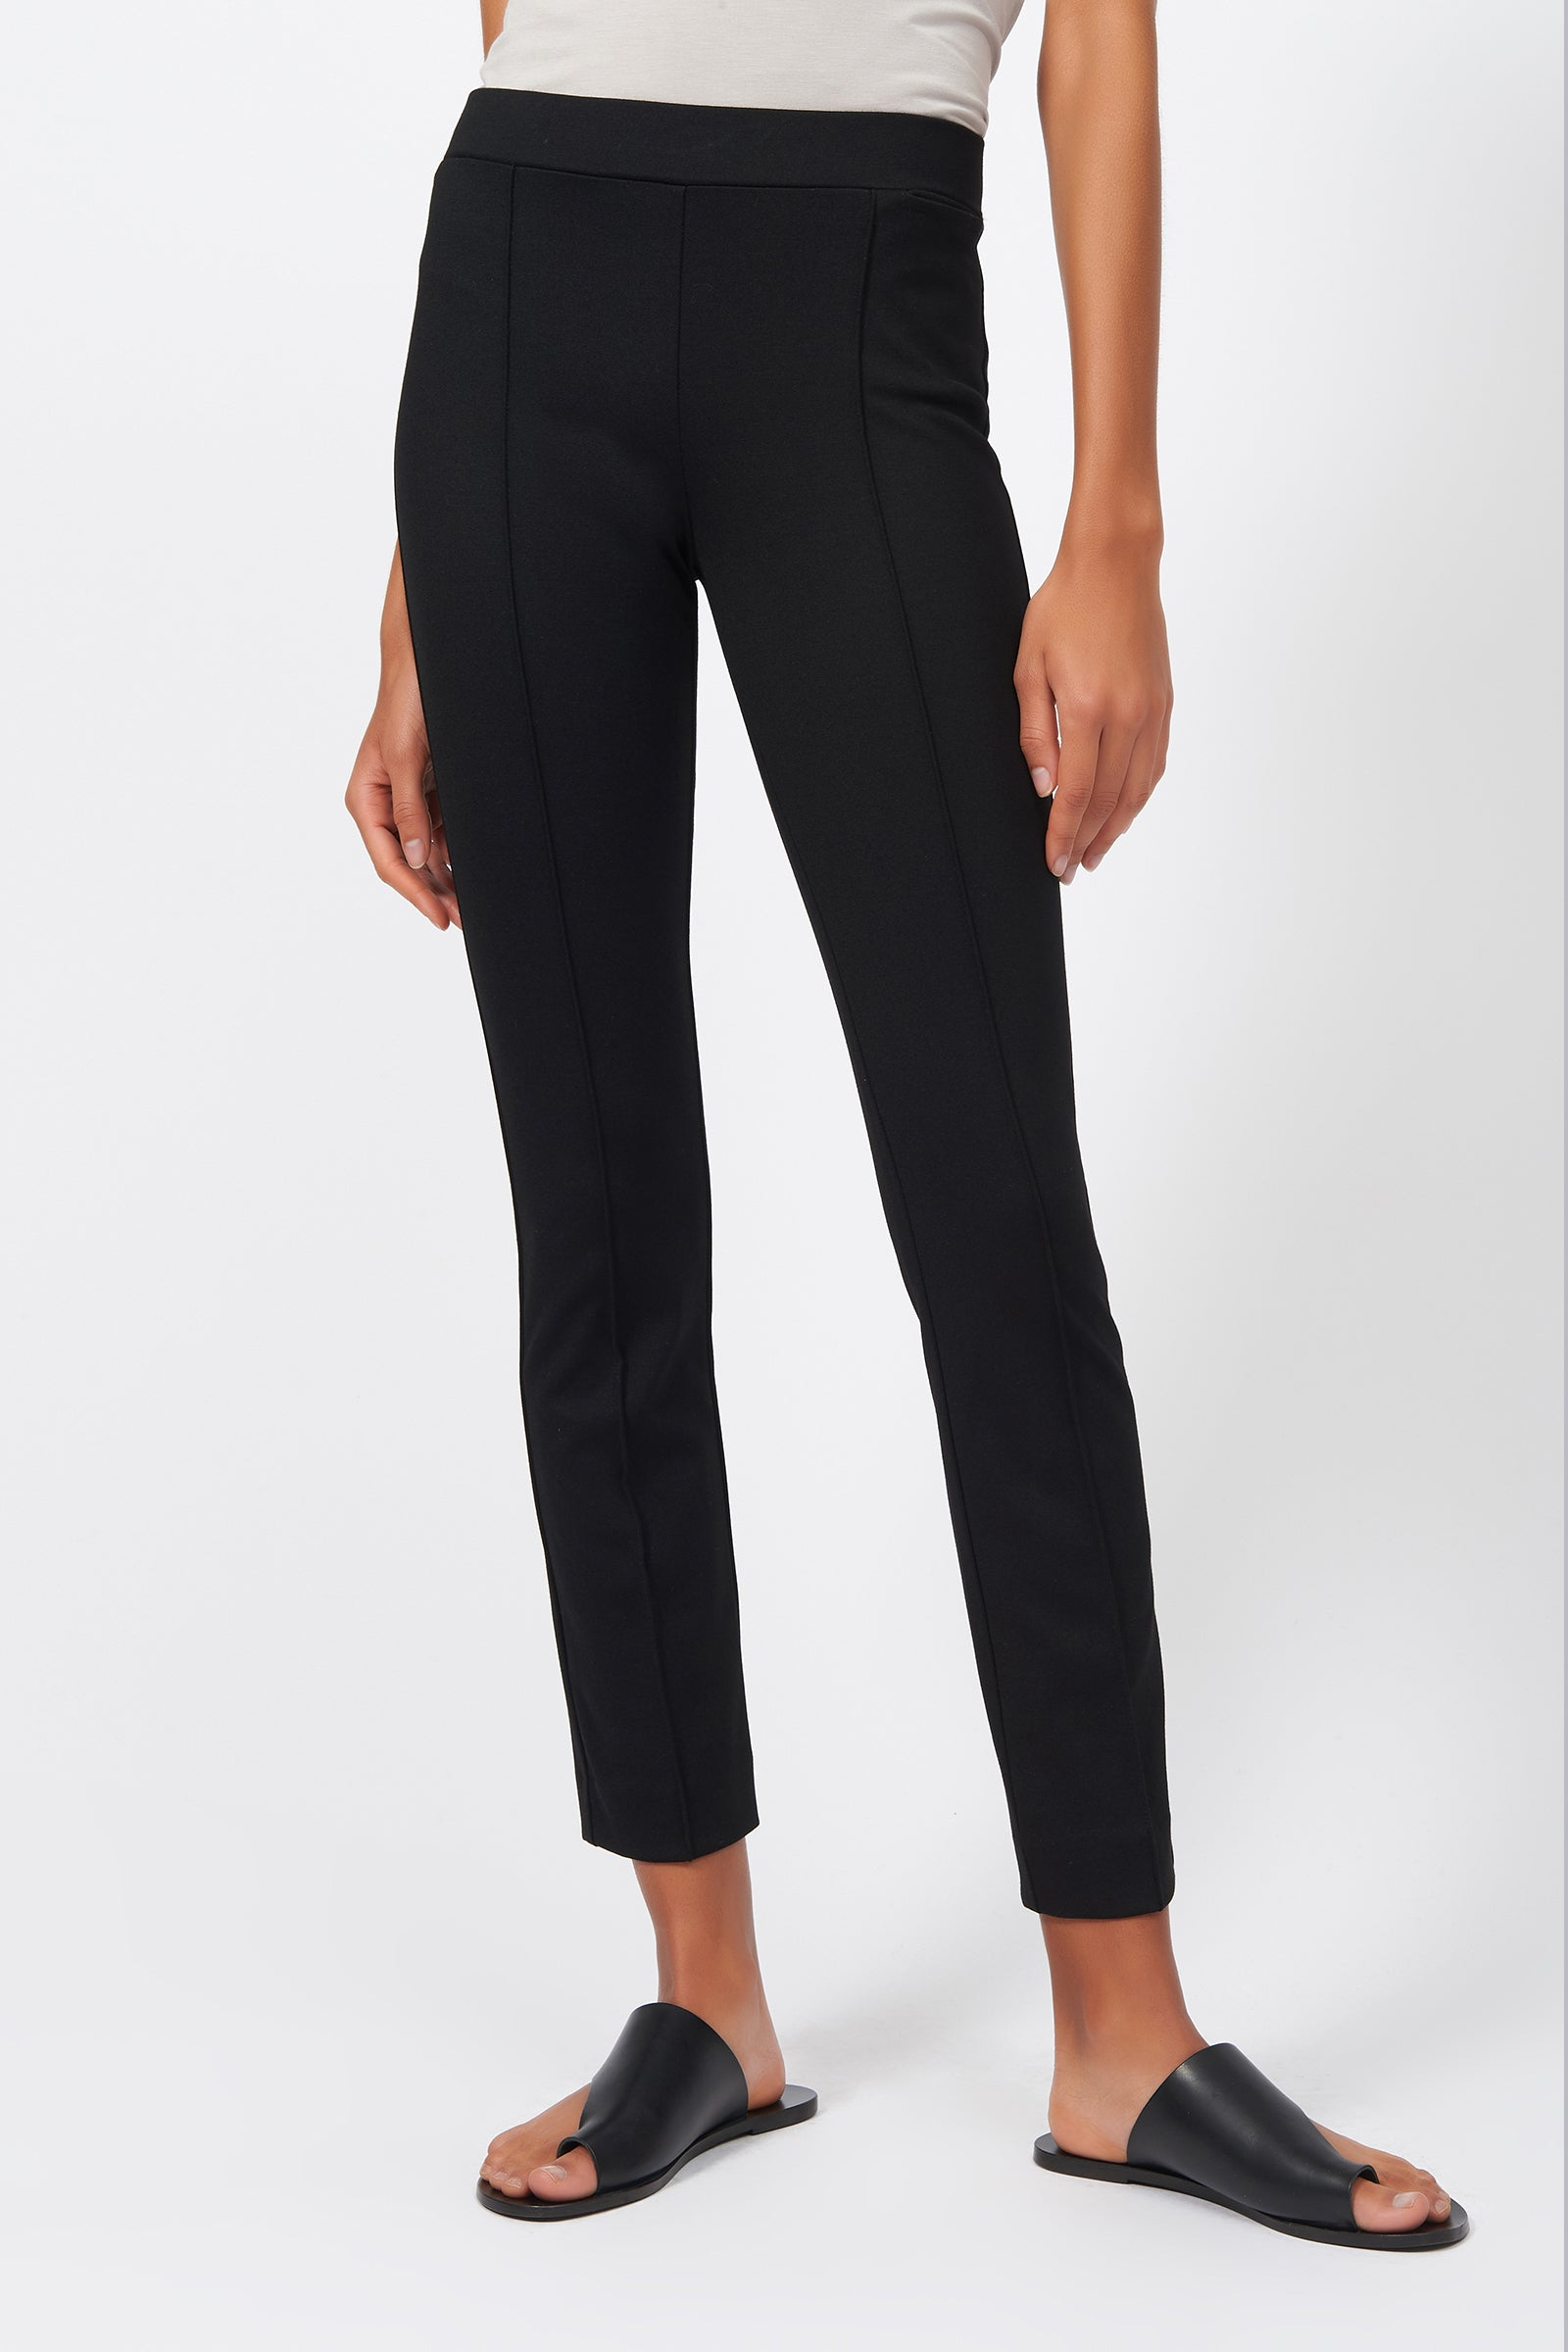 Kal Rieman Pintuck Ponte Ankle Pant in Black on Model Front Detail View